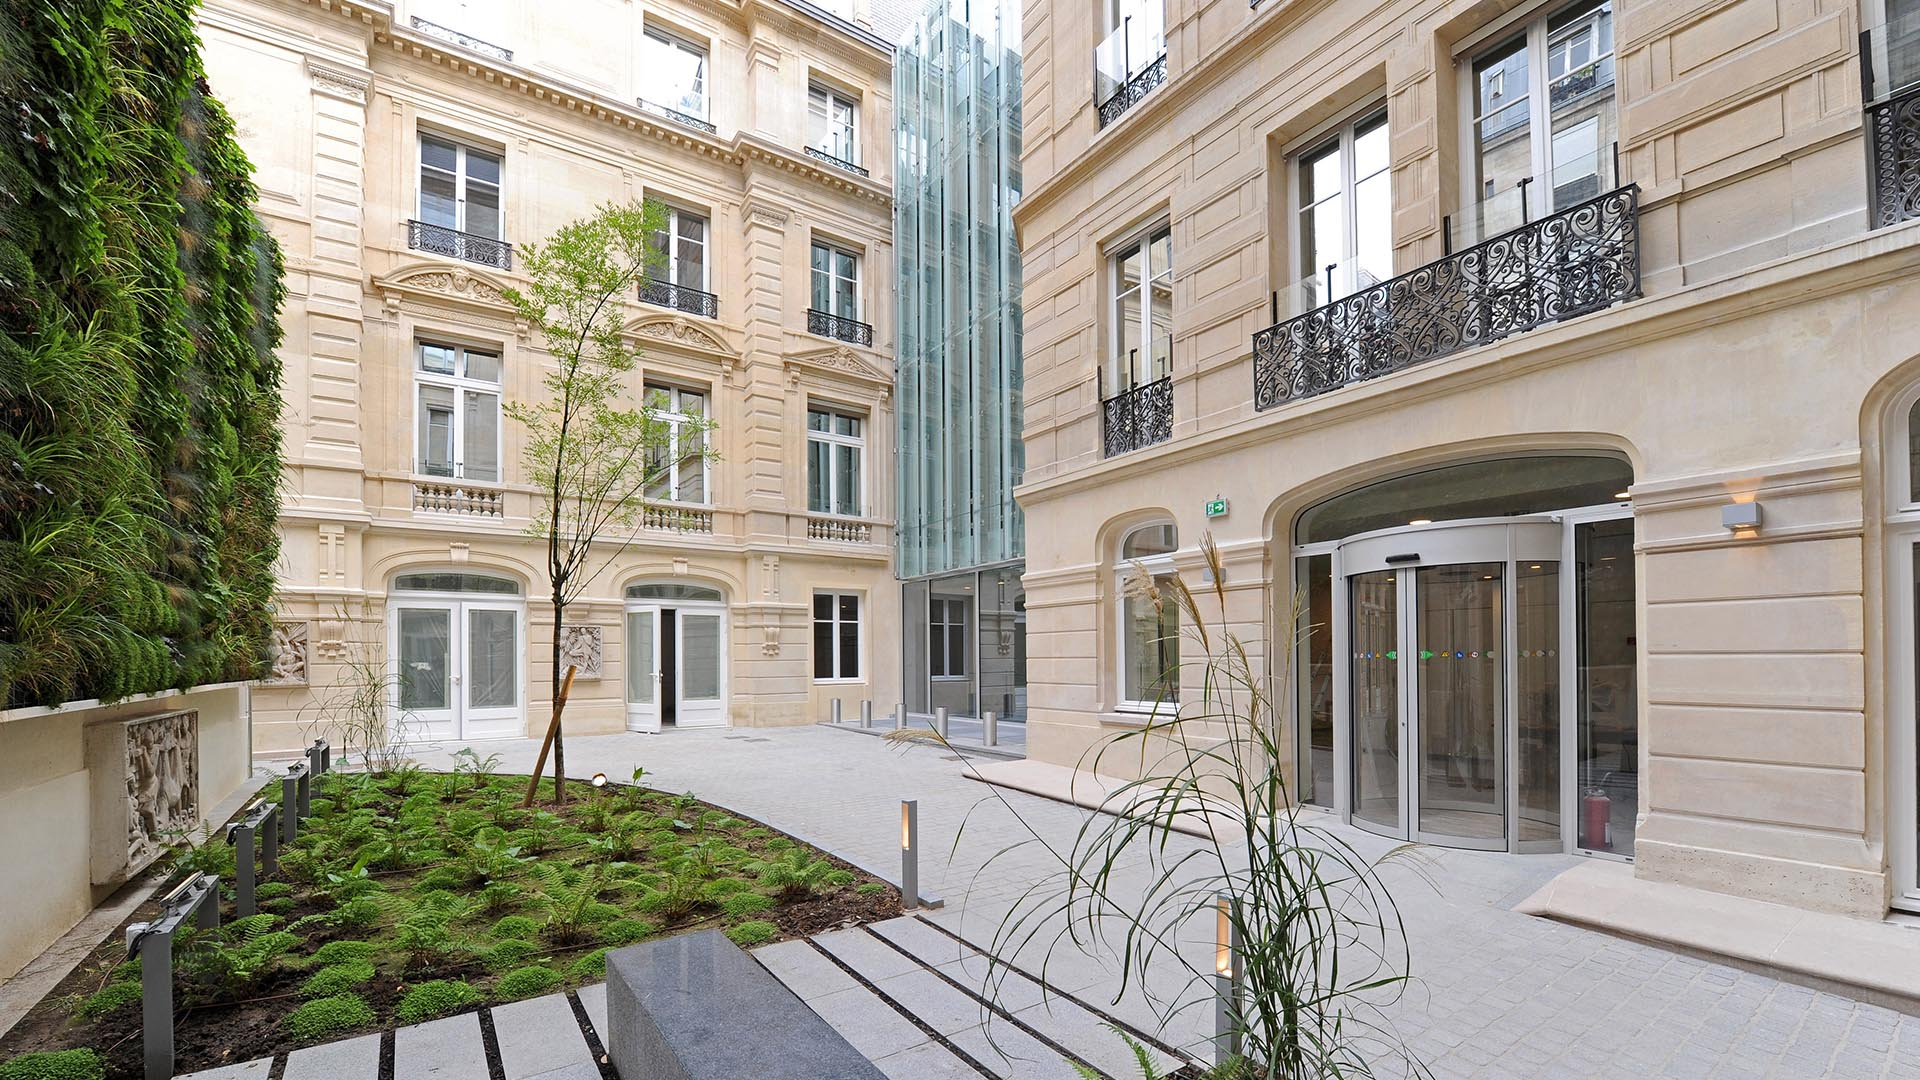 20 Boétie, Paris